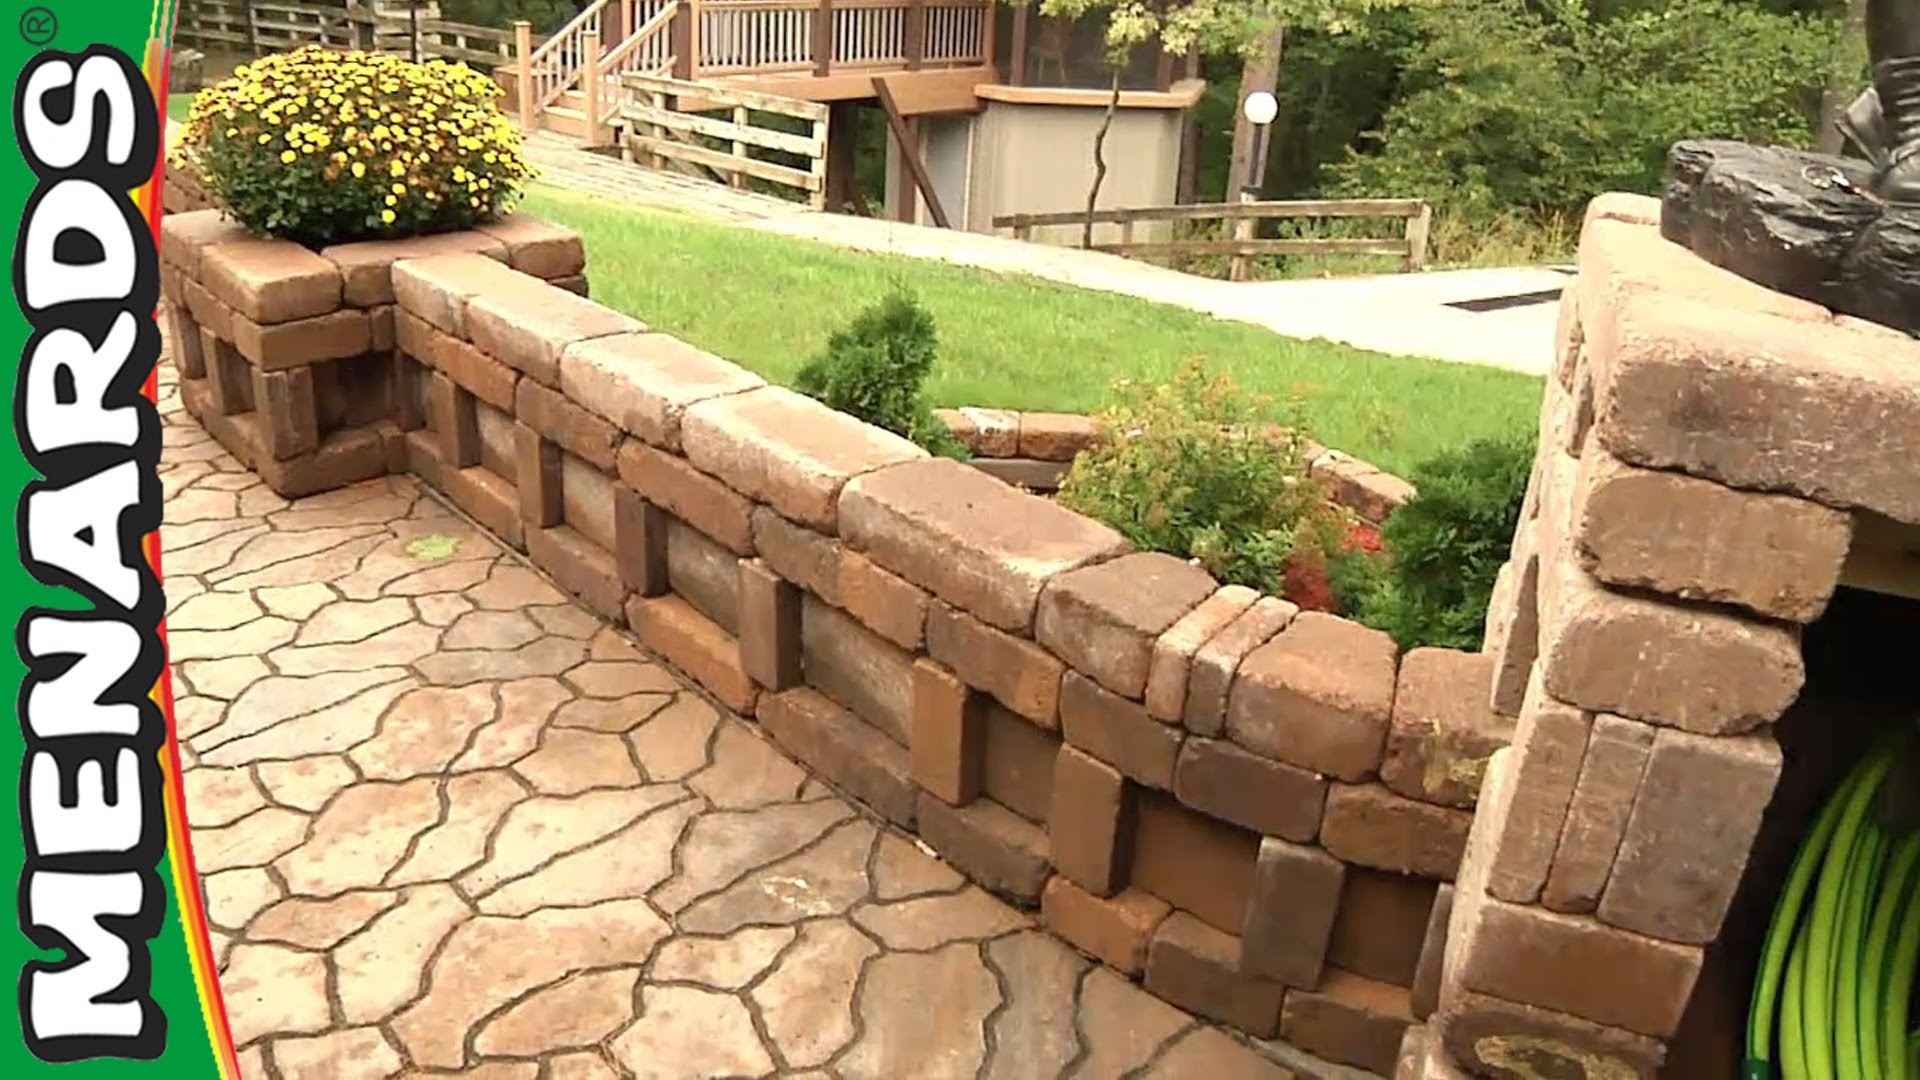 Curved Wall Planter - How To Build - Menards